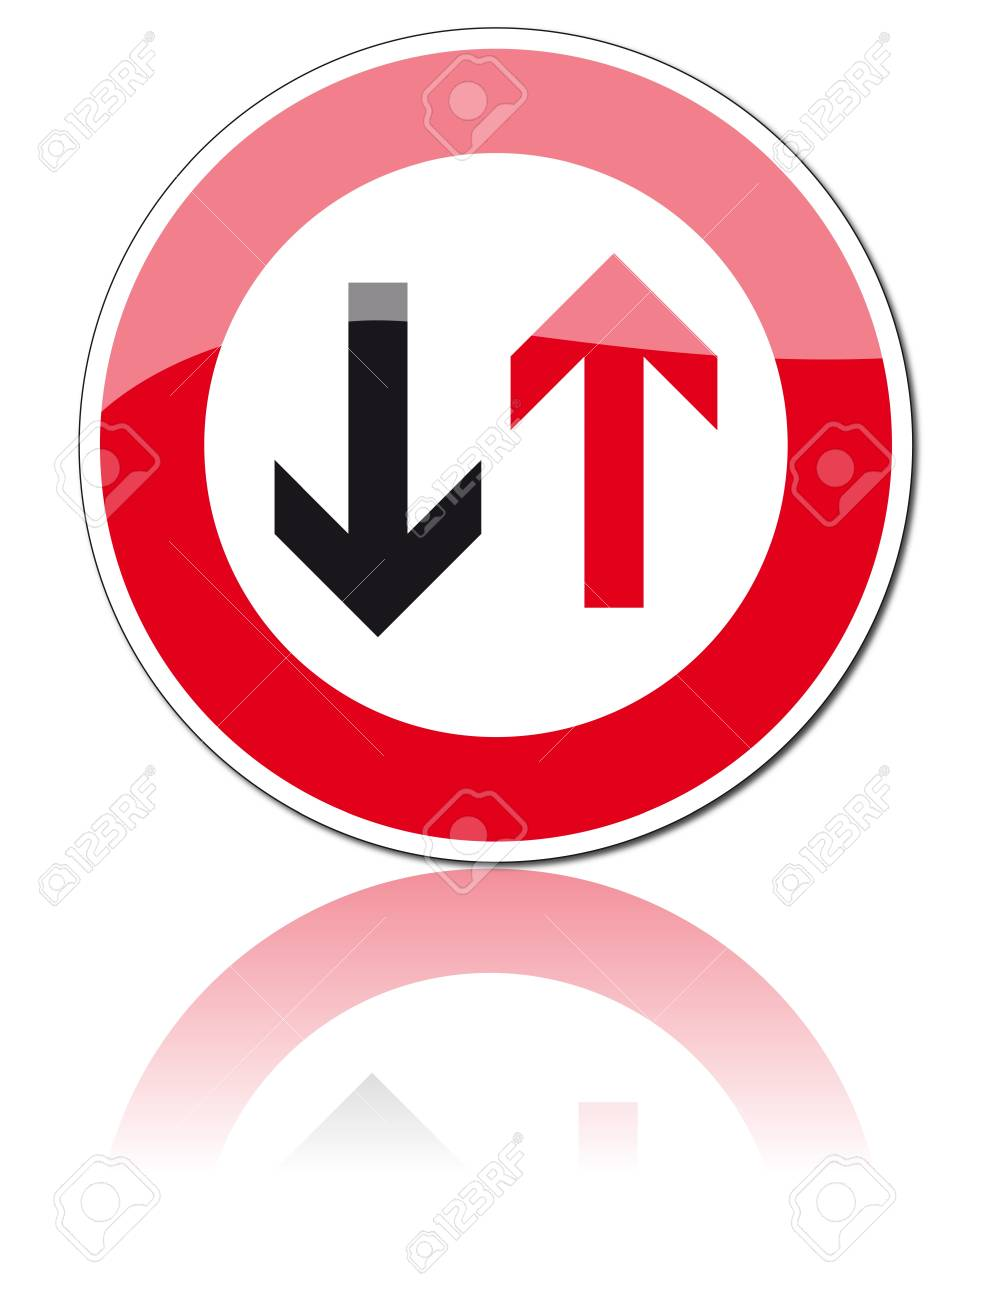 road sign Stock Photo - 9975147